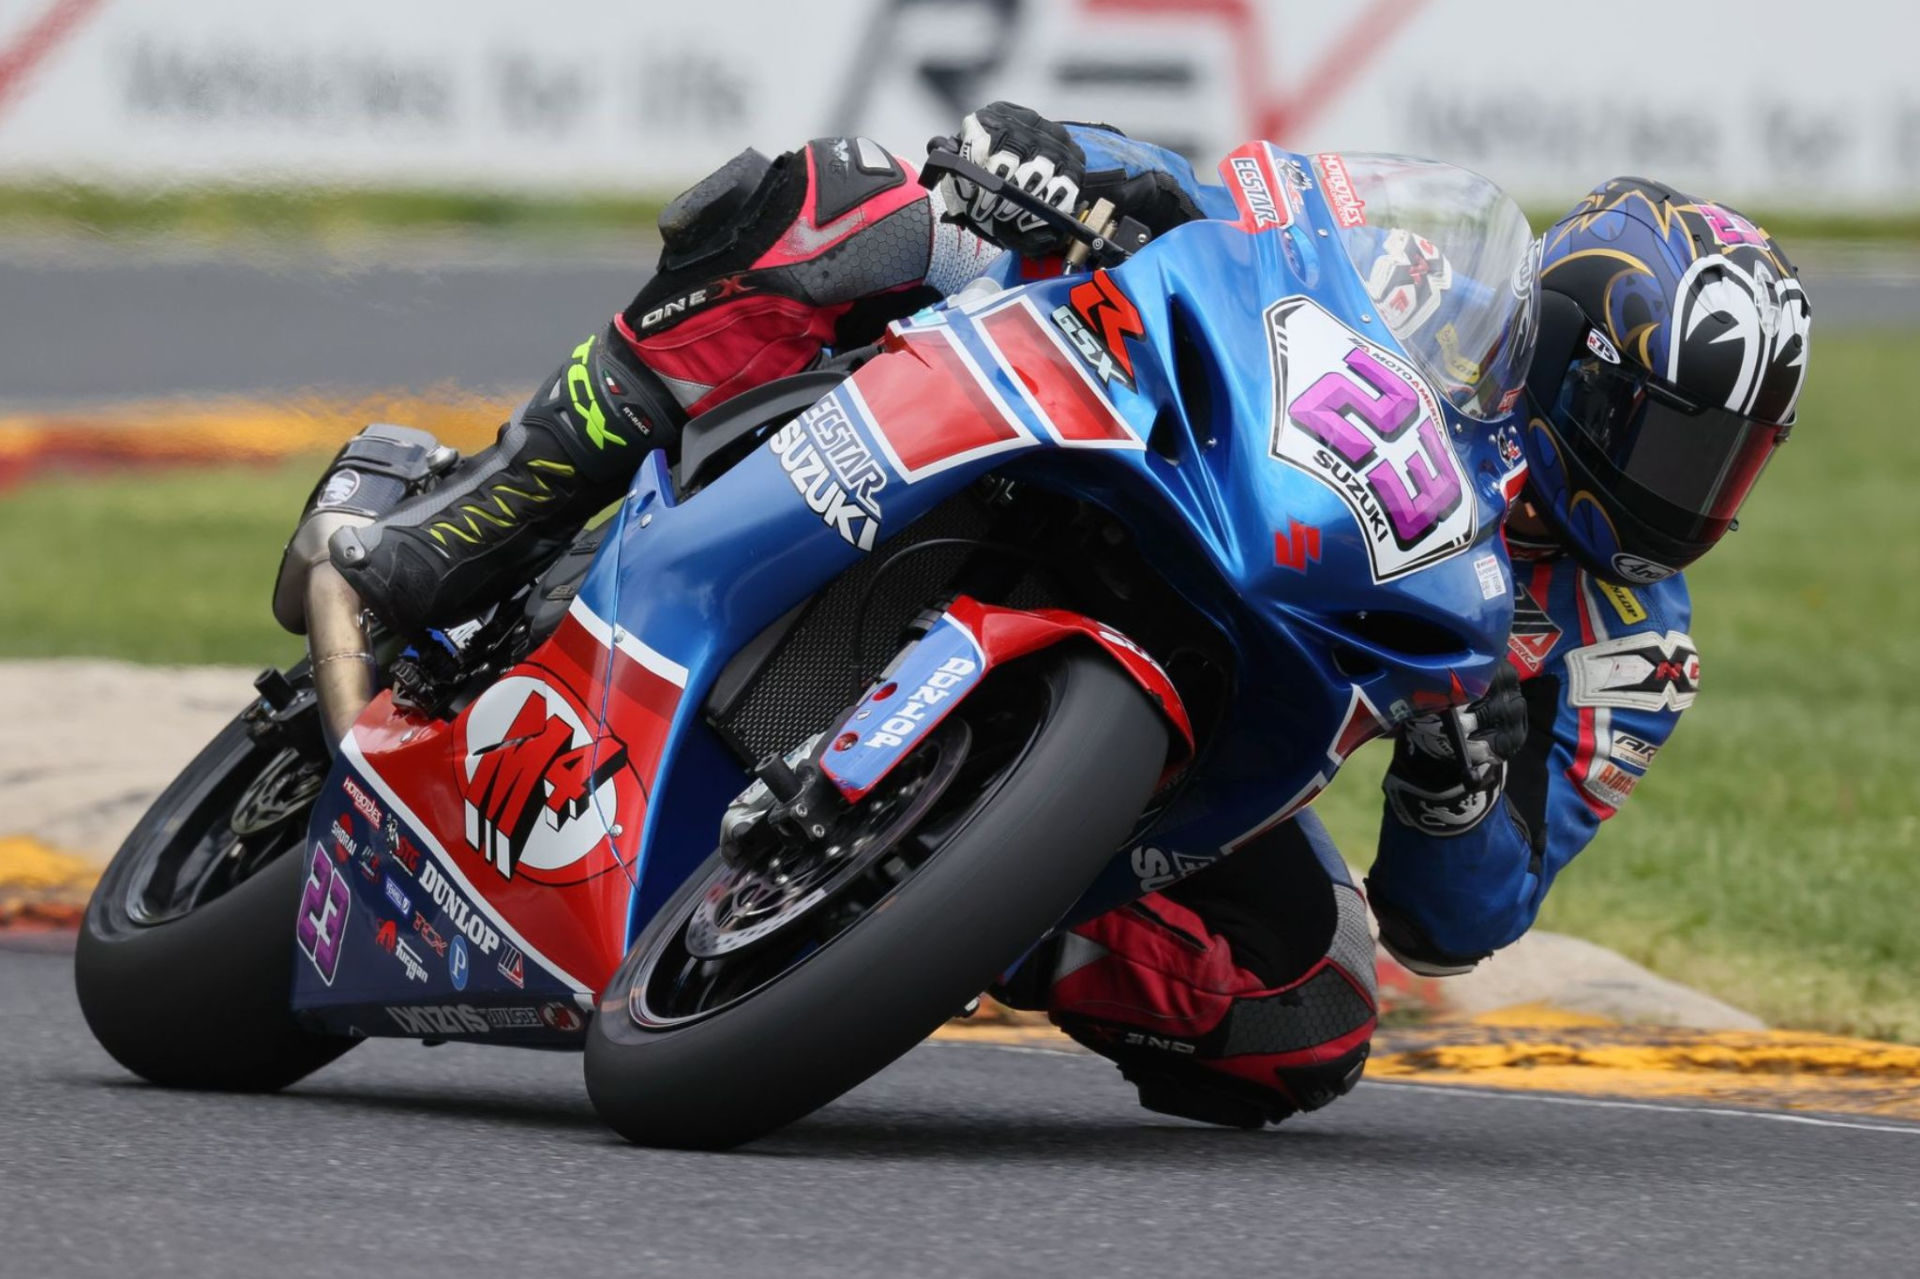 Lucas Silva (23) logged a solid sixth-place finish on his Suzuki GSX-R600 in Race 2. Photo by Brian J. Nelson, courtesy Suzuki Motor of America Inc.